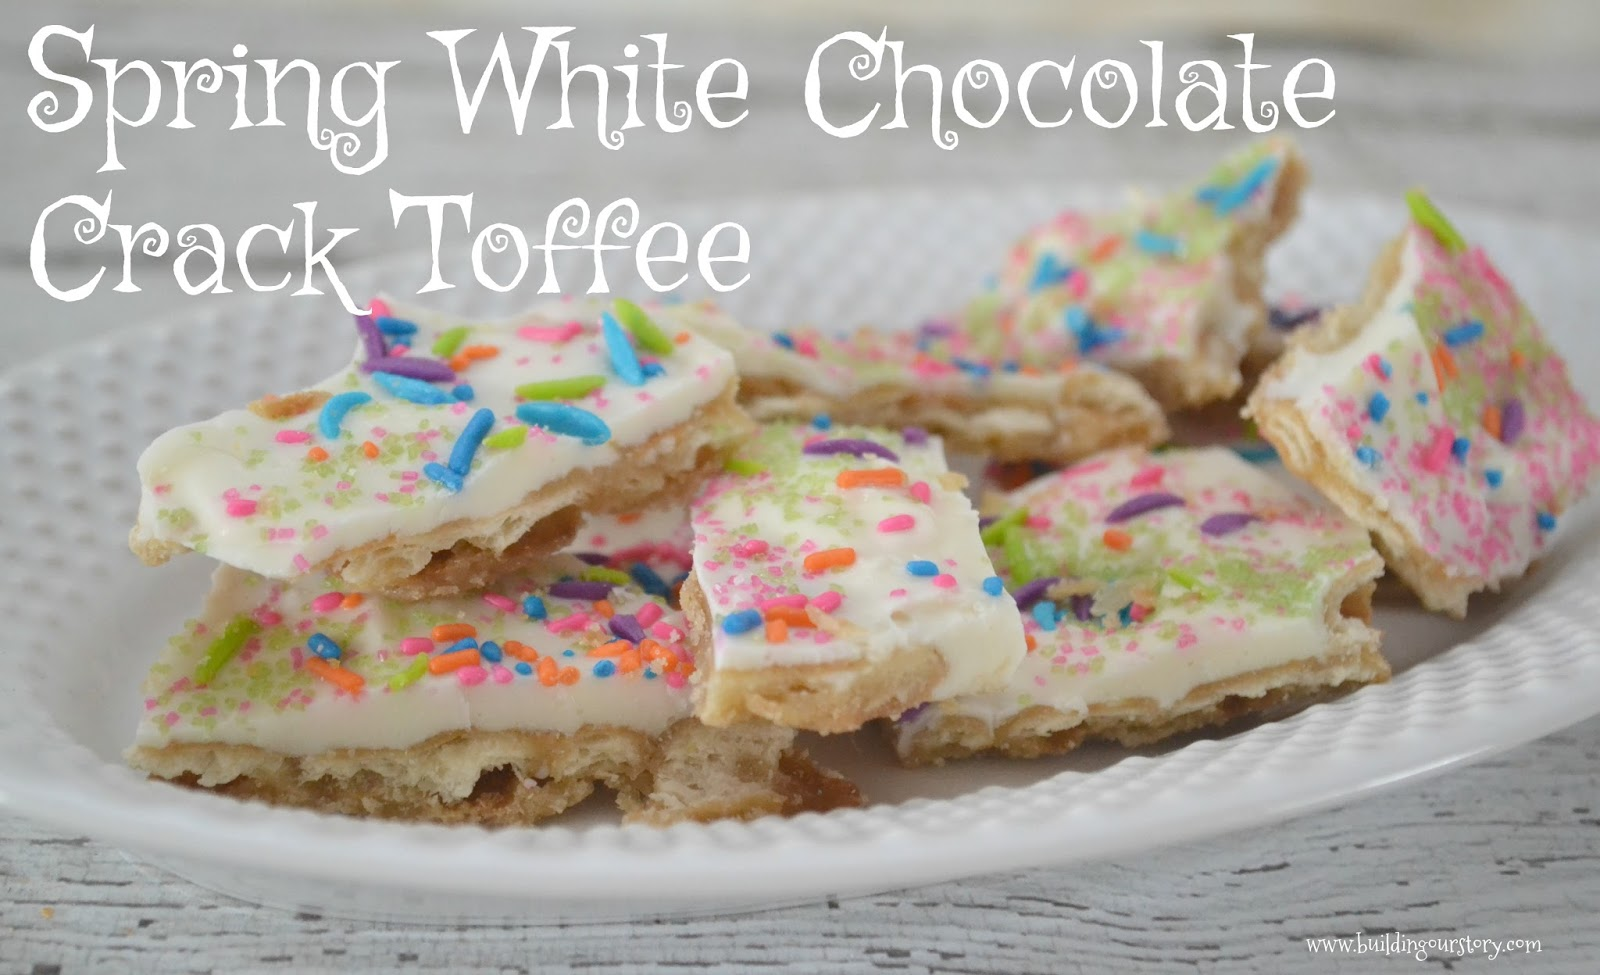 Spring White Chocolate Crack Toffee |Building Our Story